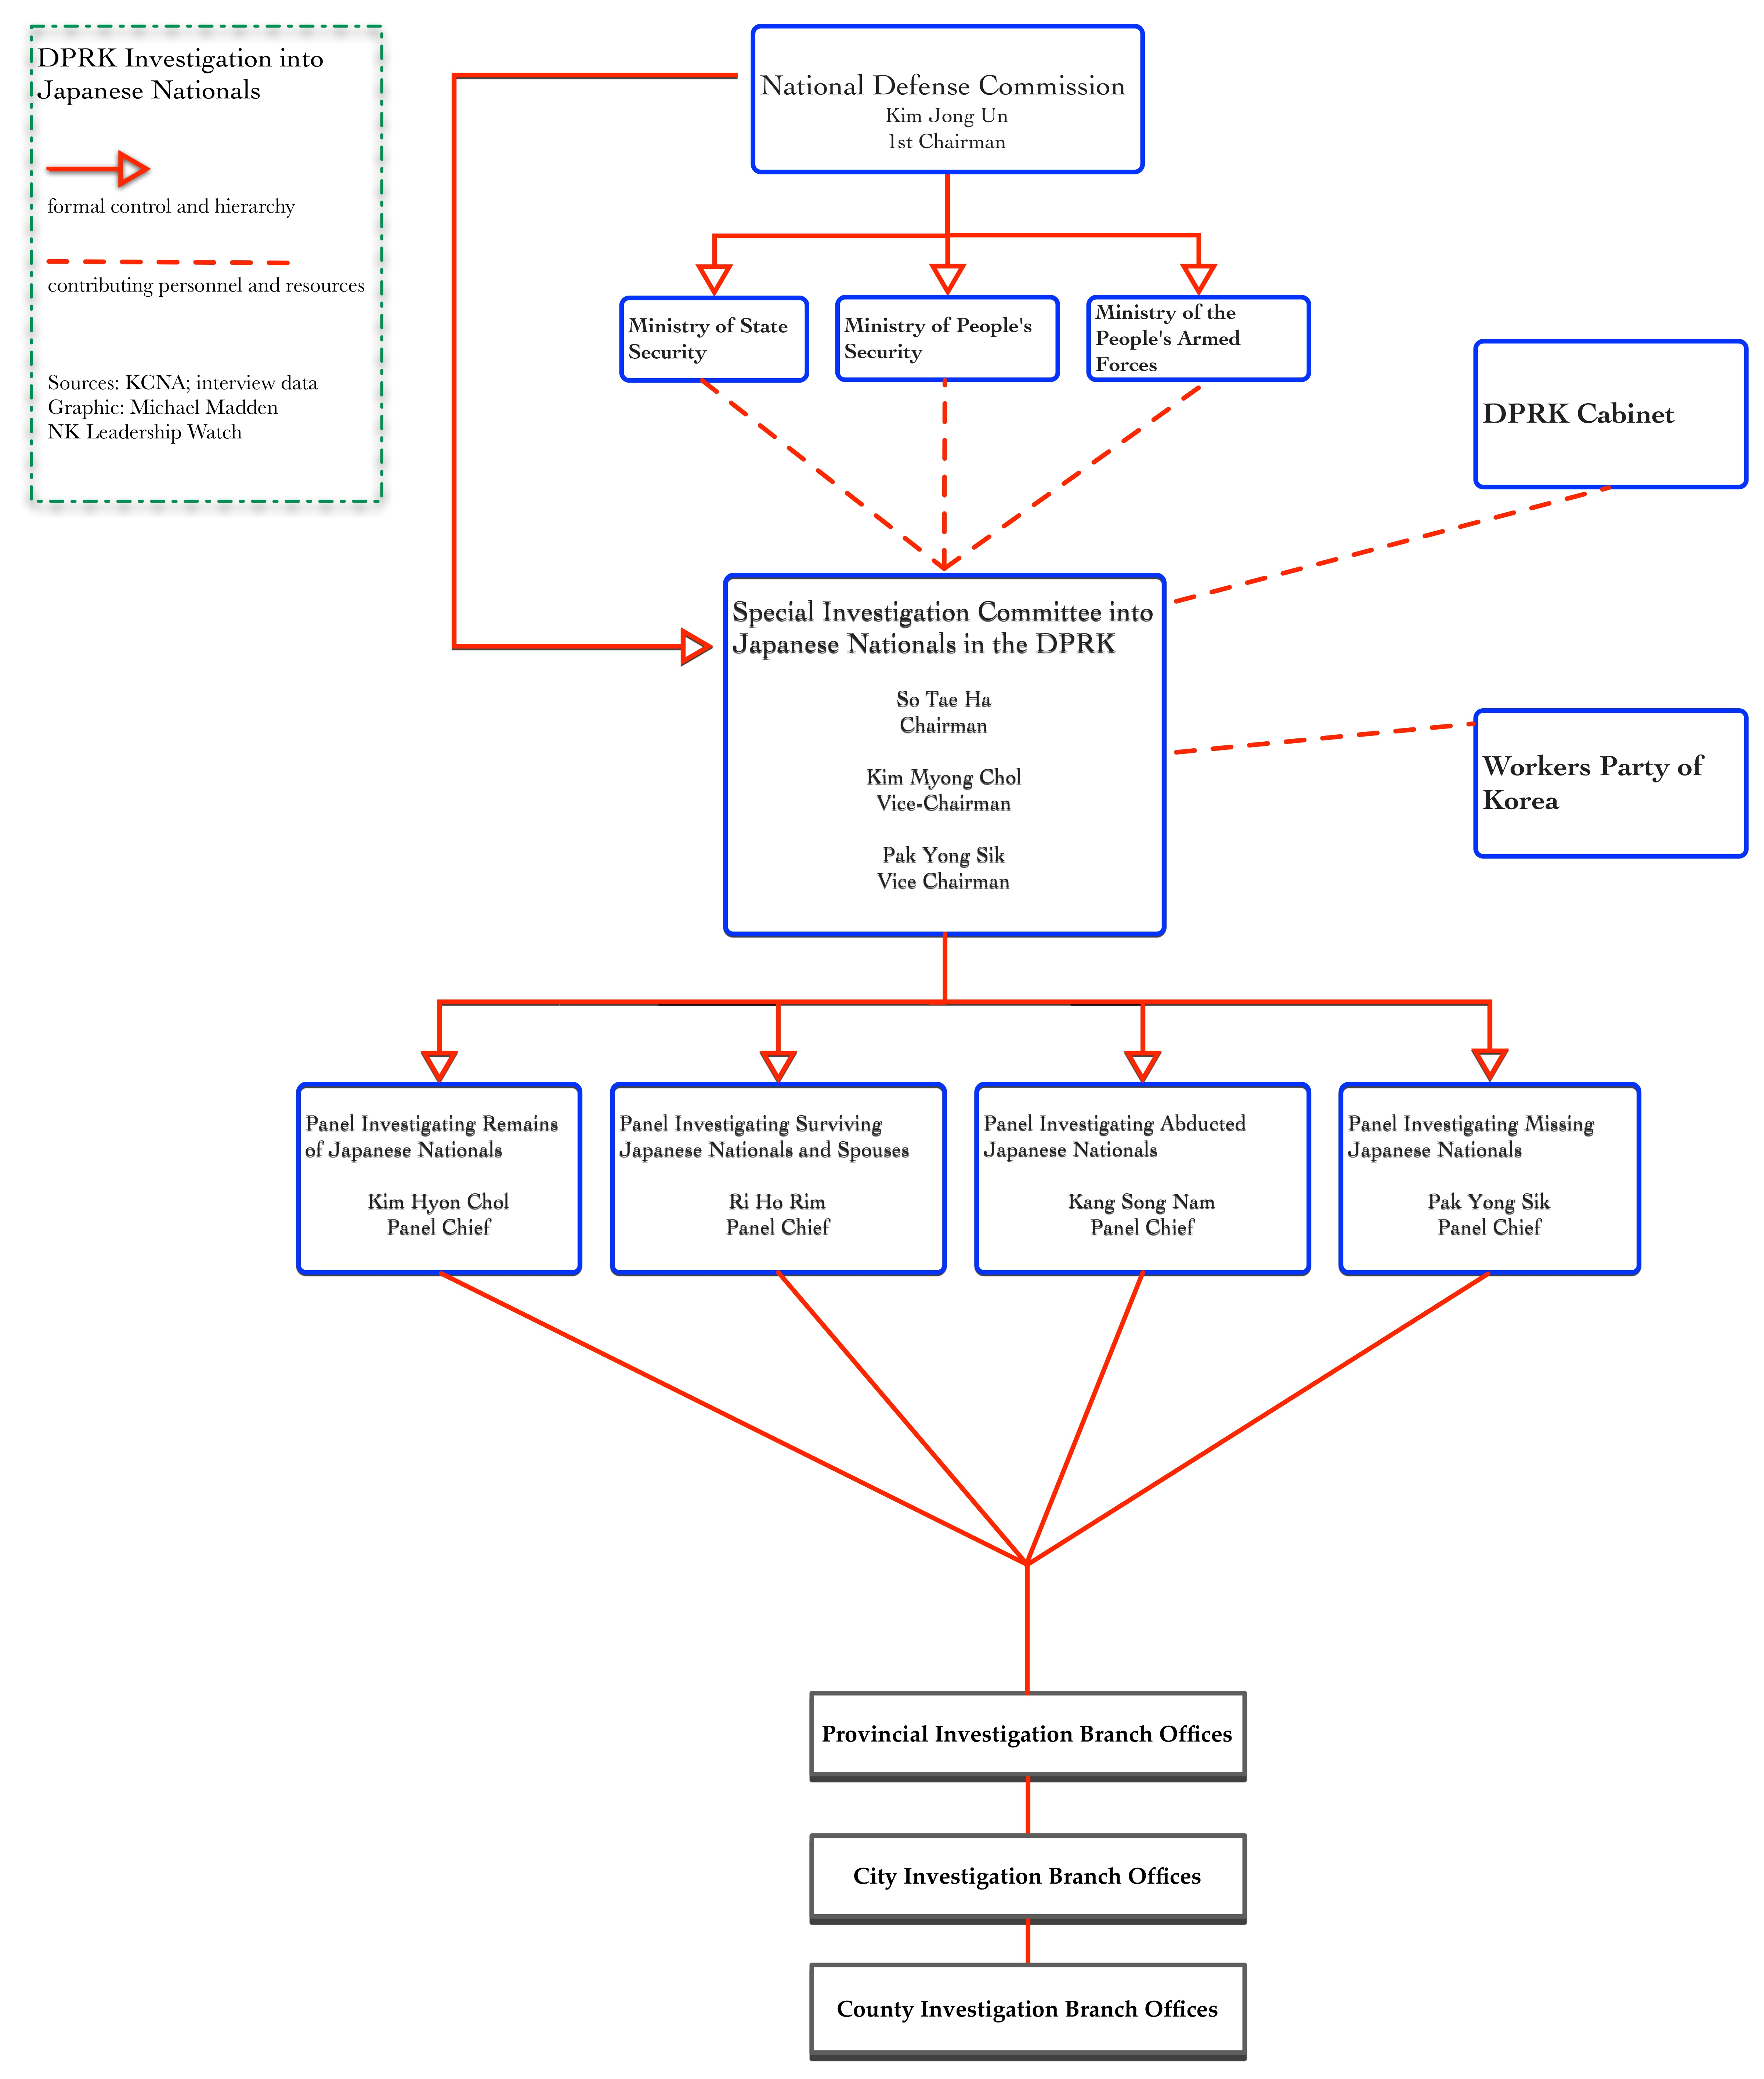 Graphic showing the organization of the DPRK Special Investigation in to Japanese Nationals Residing in the DPRK (Photo: NK Leadership Watch)